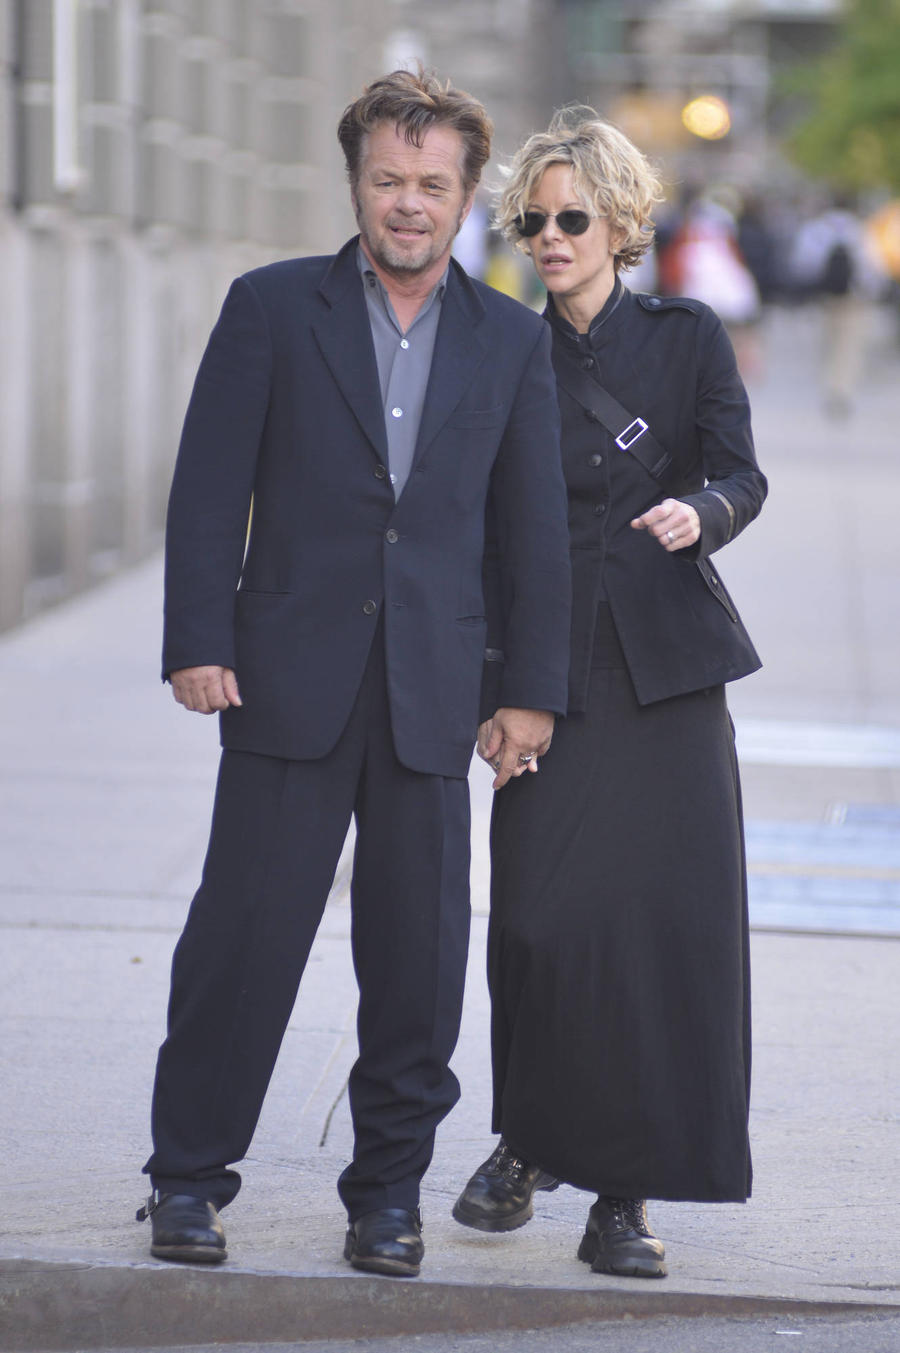 John Mellencamp And Meg Ryan Aren't Friends After Split